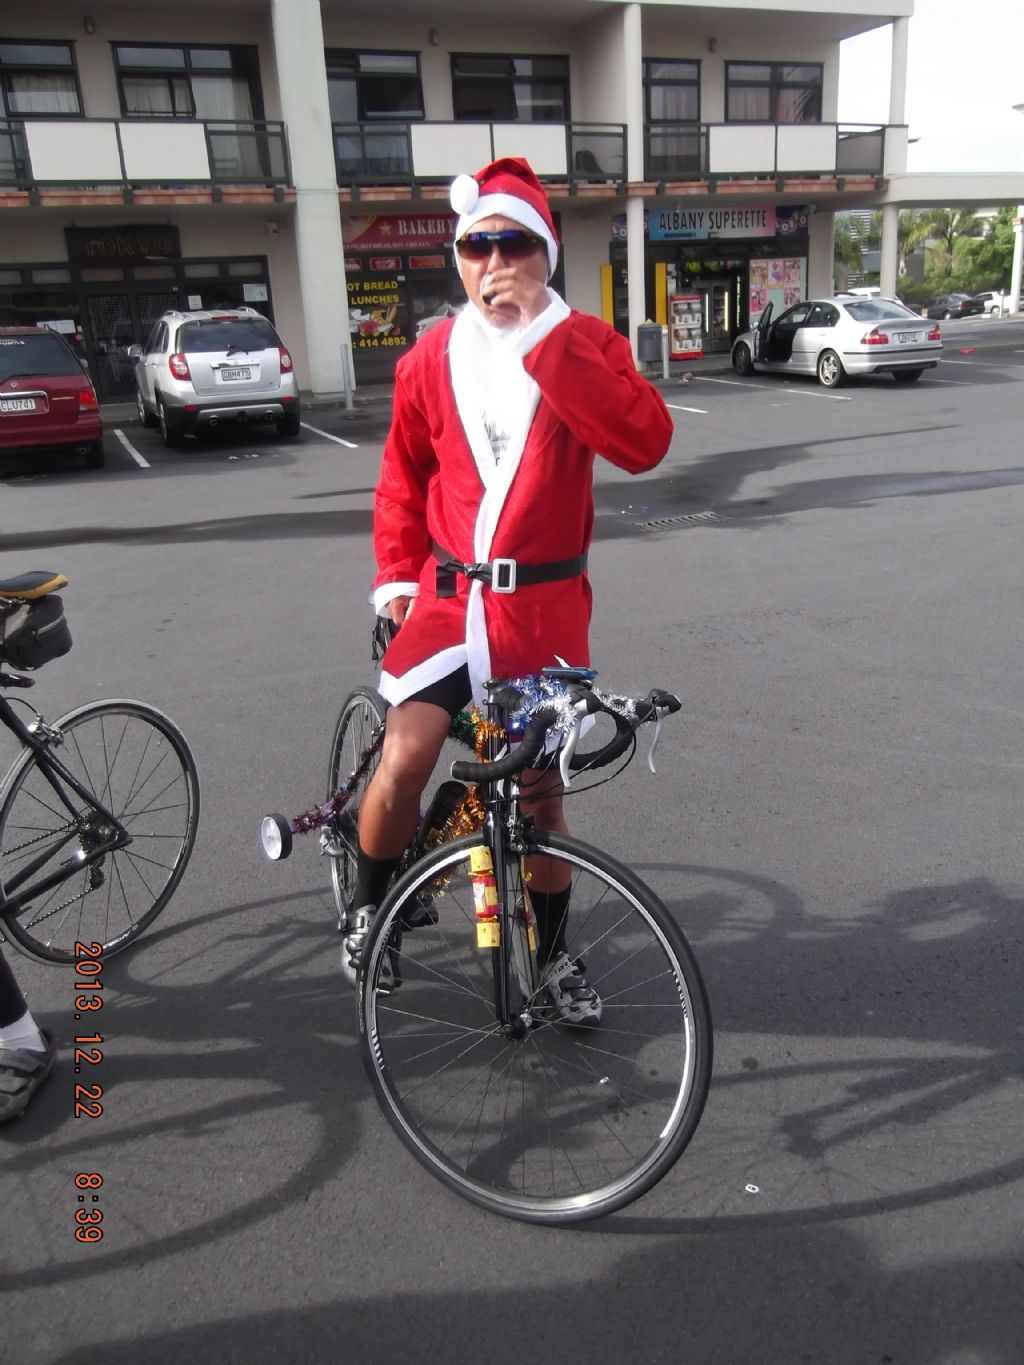 Santa with Trainer wheels